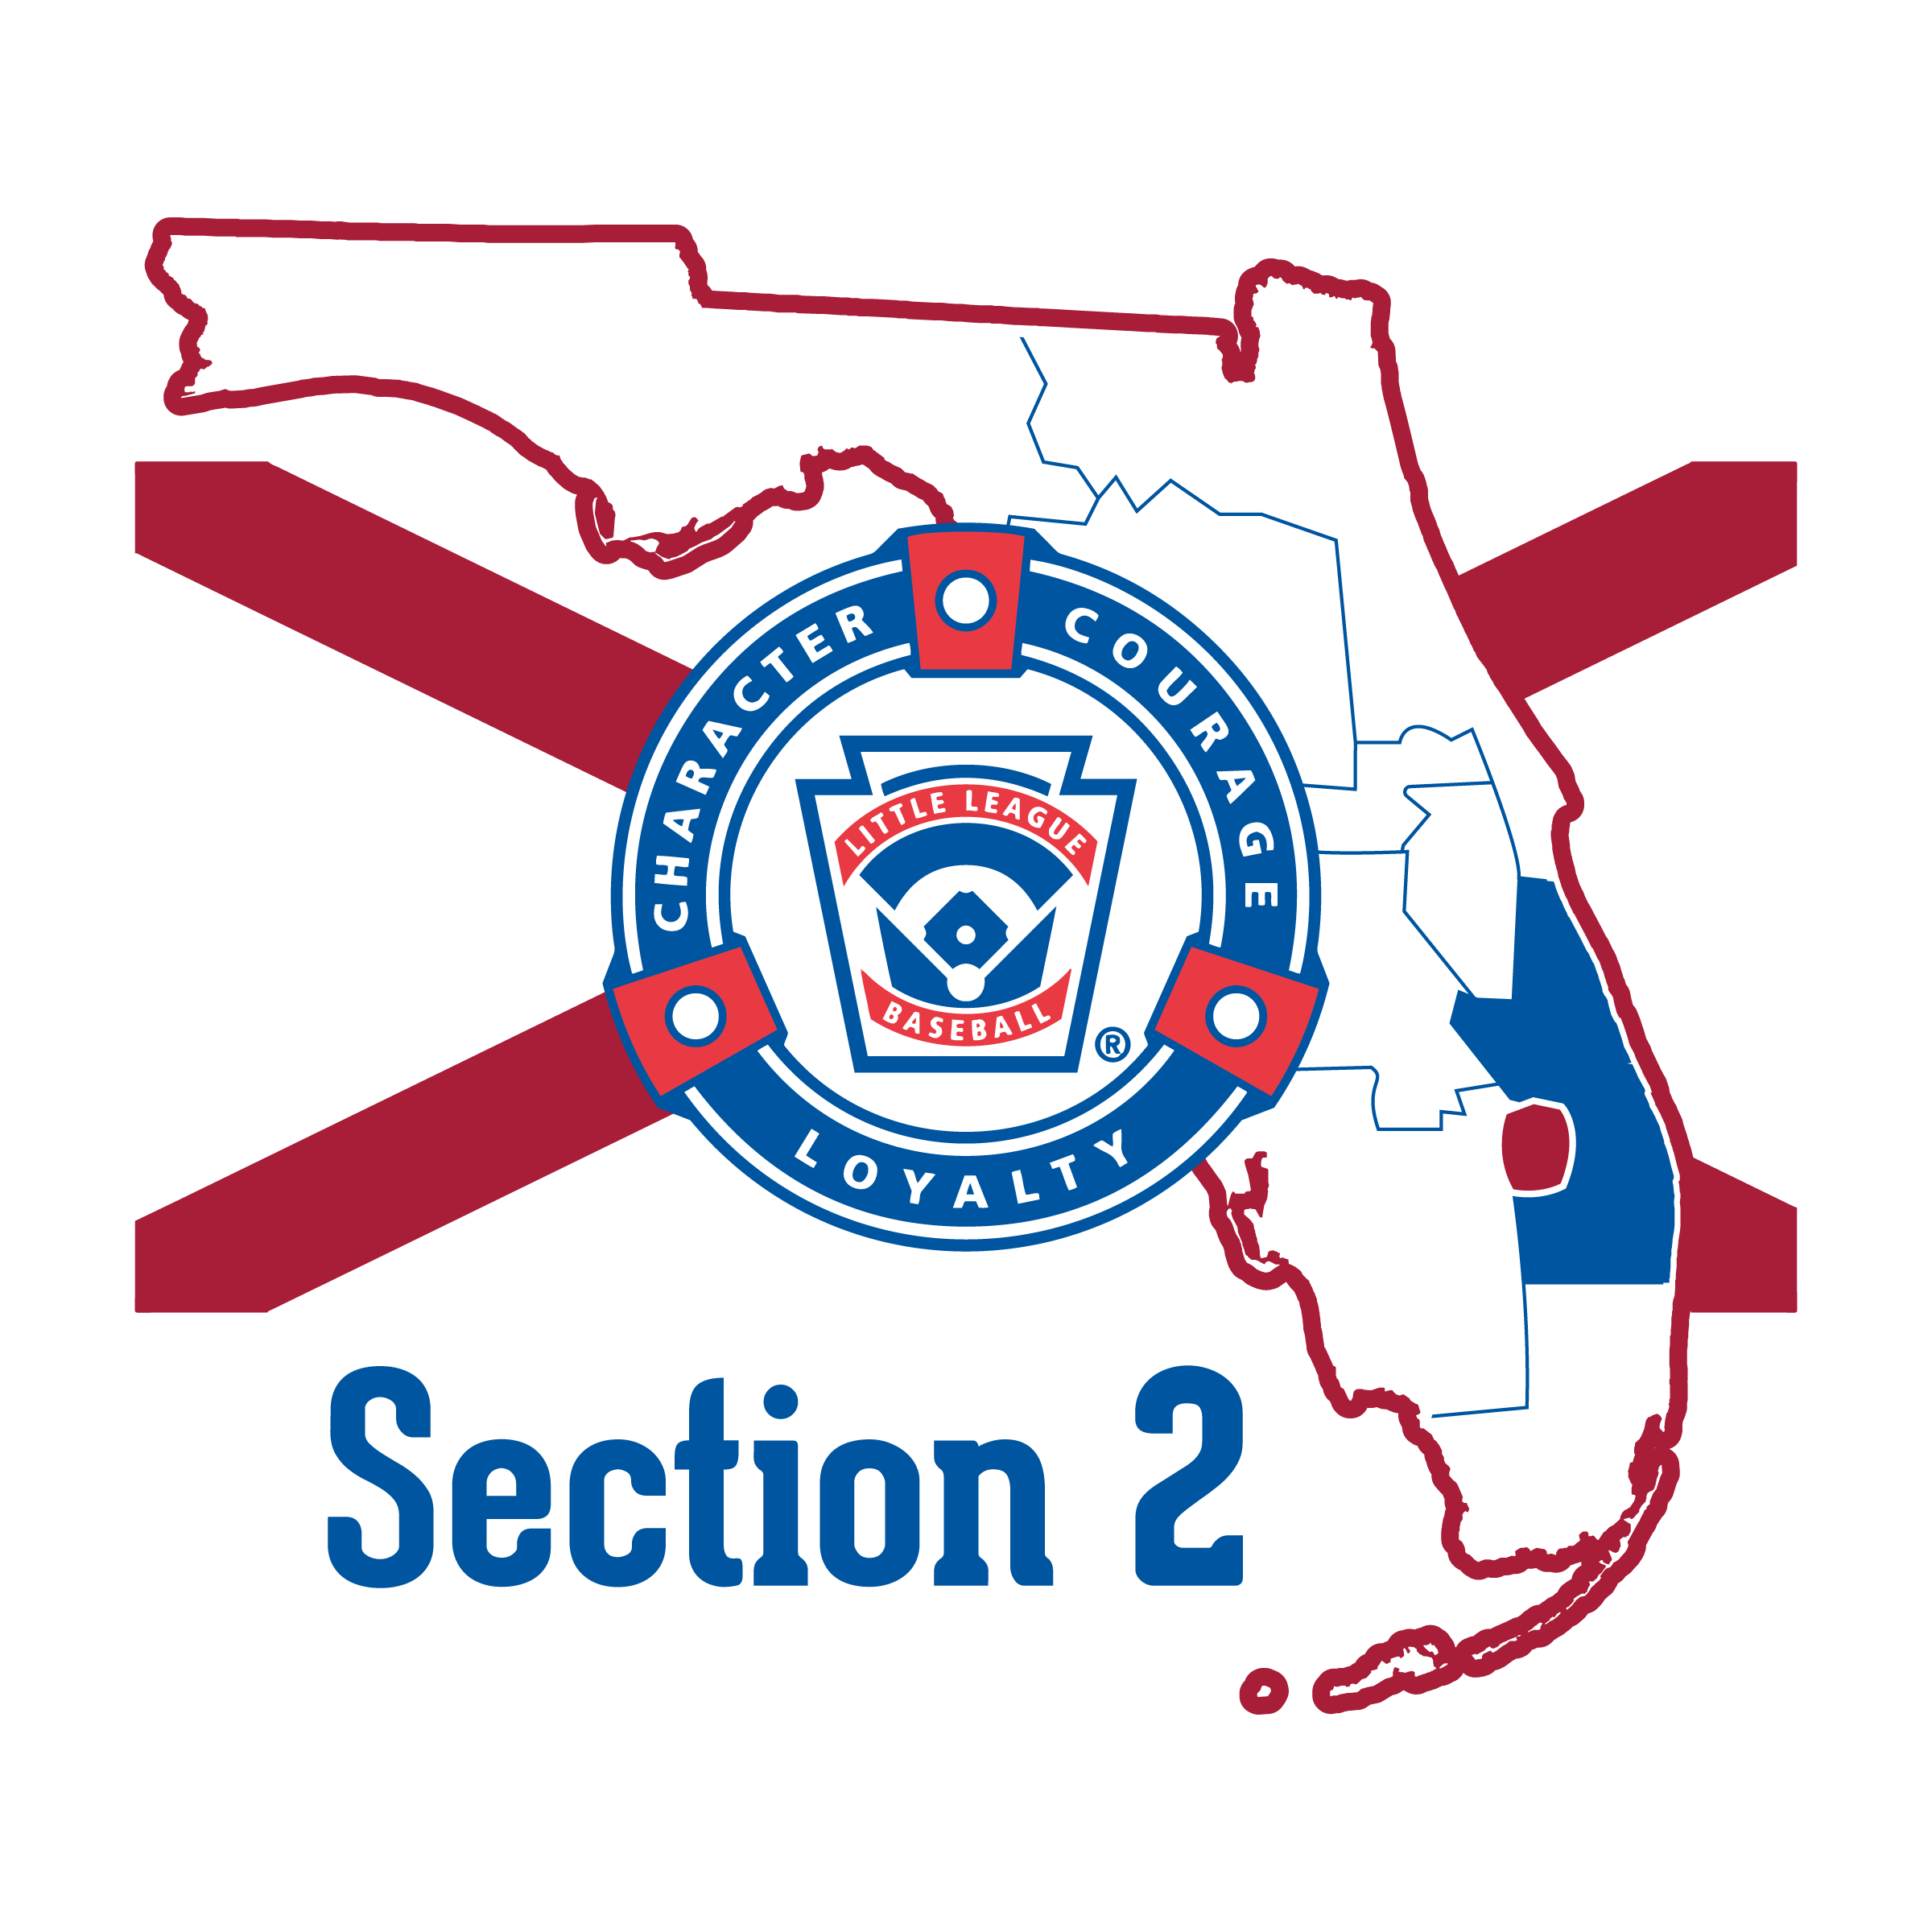 Florida Section 2